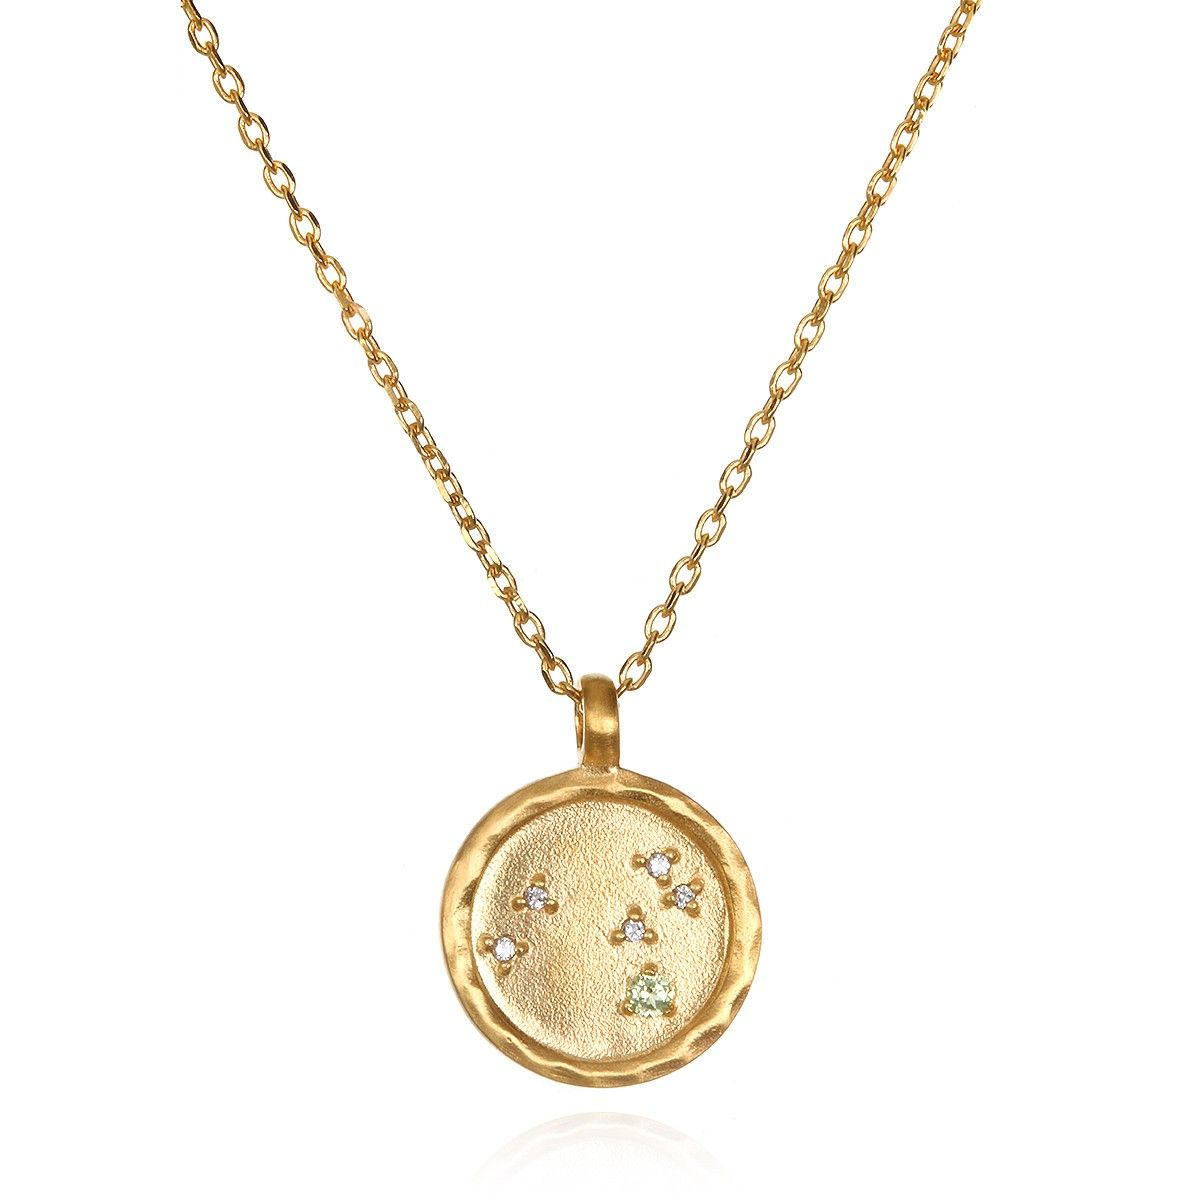 Satya jewelry leo zodiac necklace gold products pinterest products